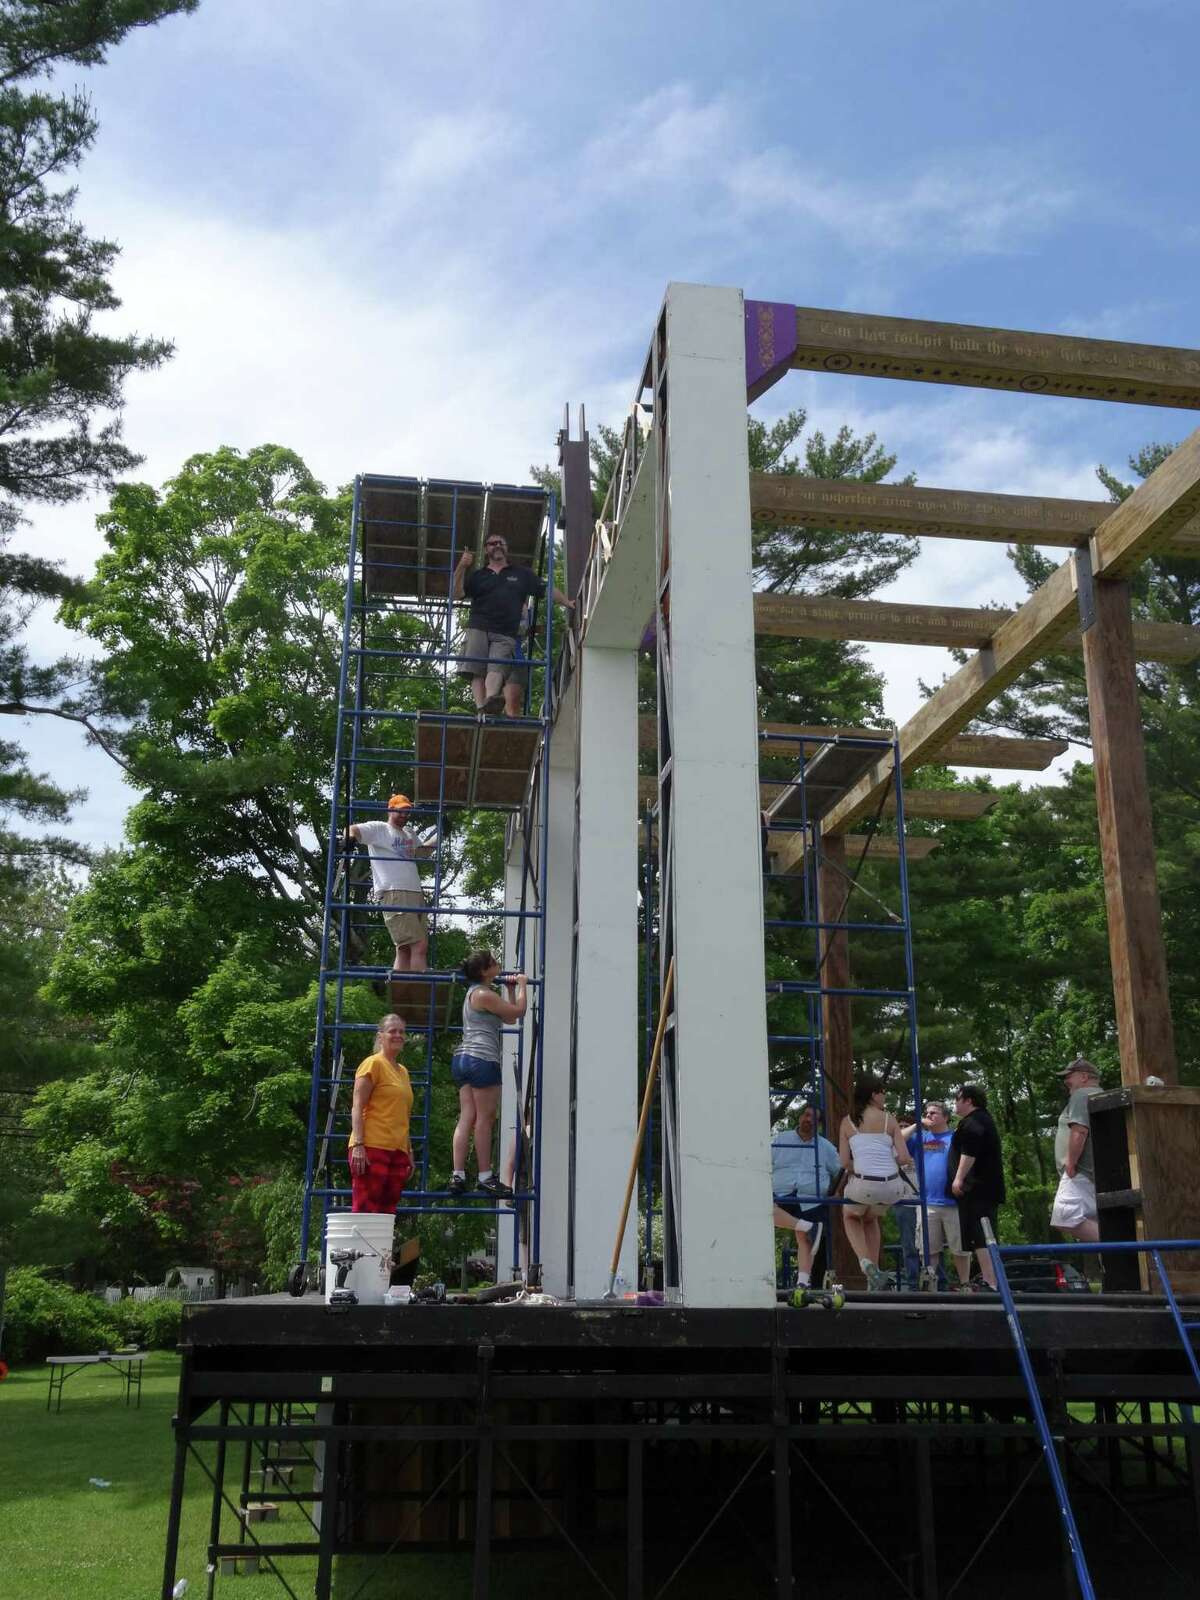 Members of the Curtain Call communtiy theater company build a recreation of Shakepeare's Globe Theater every year for its Shakespeare on the Green series. This year, the company will put on the Bard's Romeo and Juliet.